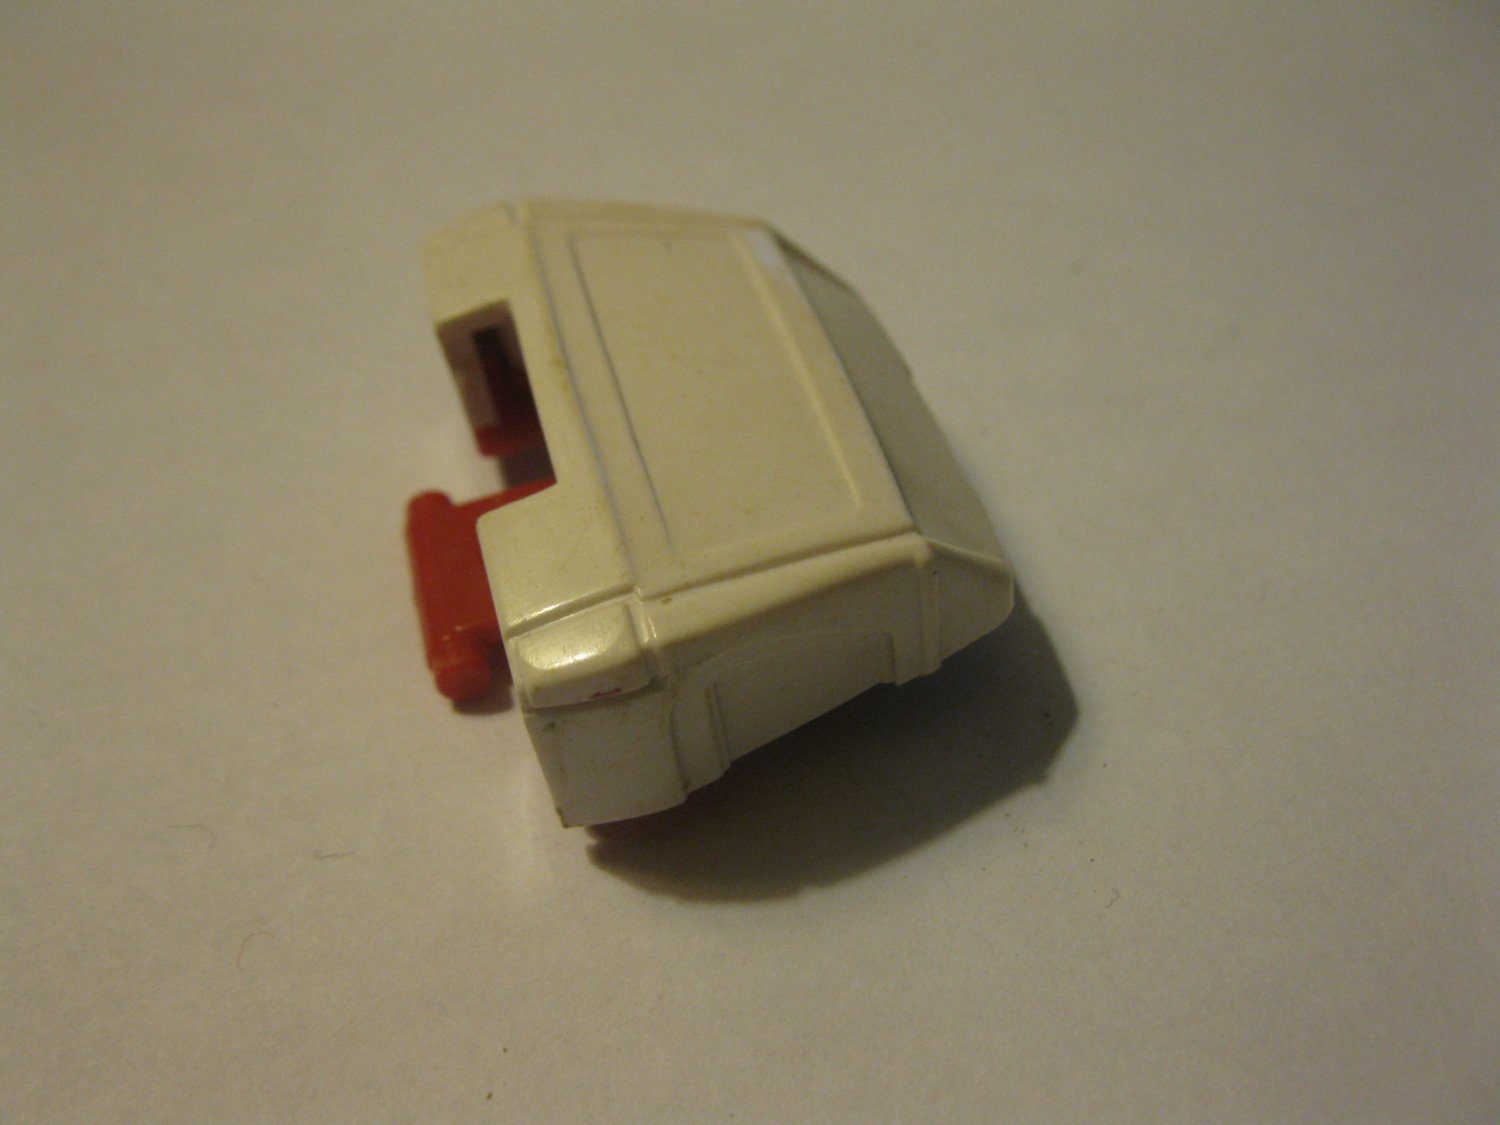 G1 Transformers Action figure part: 1984 Ratchet - Ambulance Rear Door / Hatch